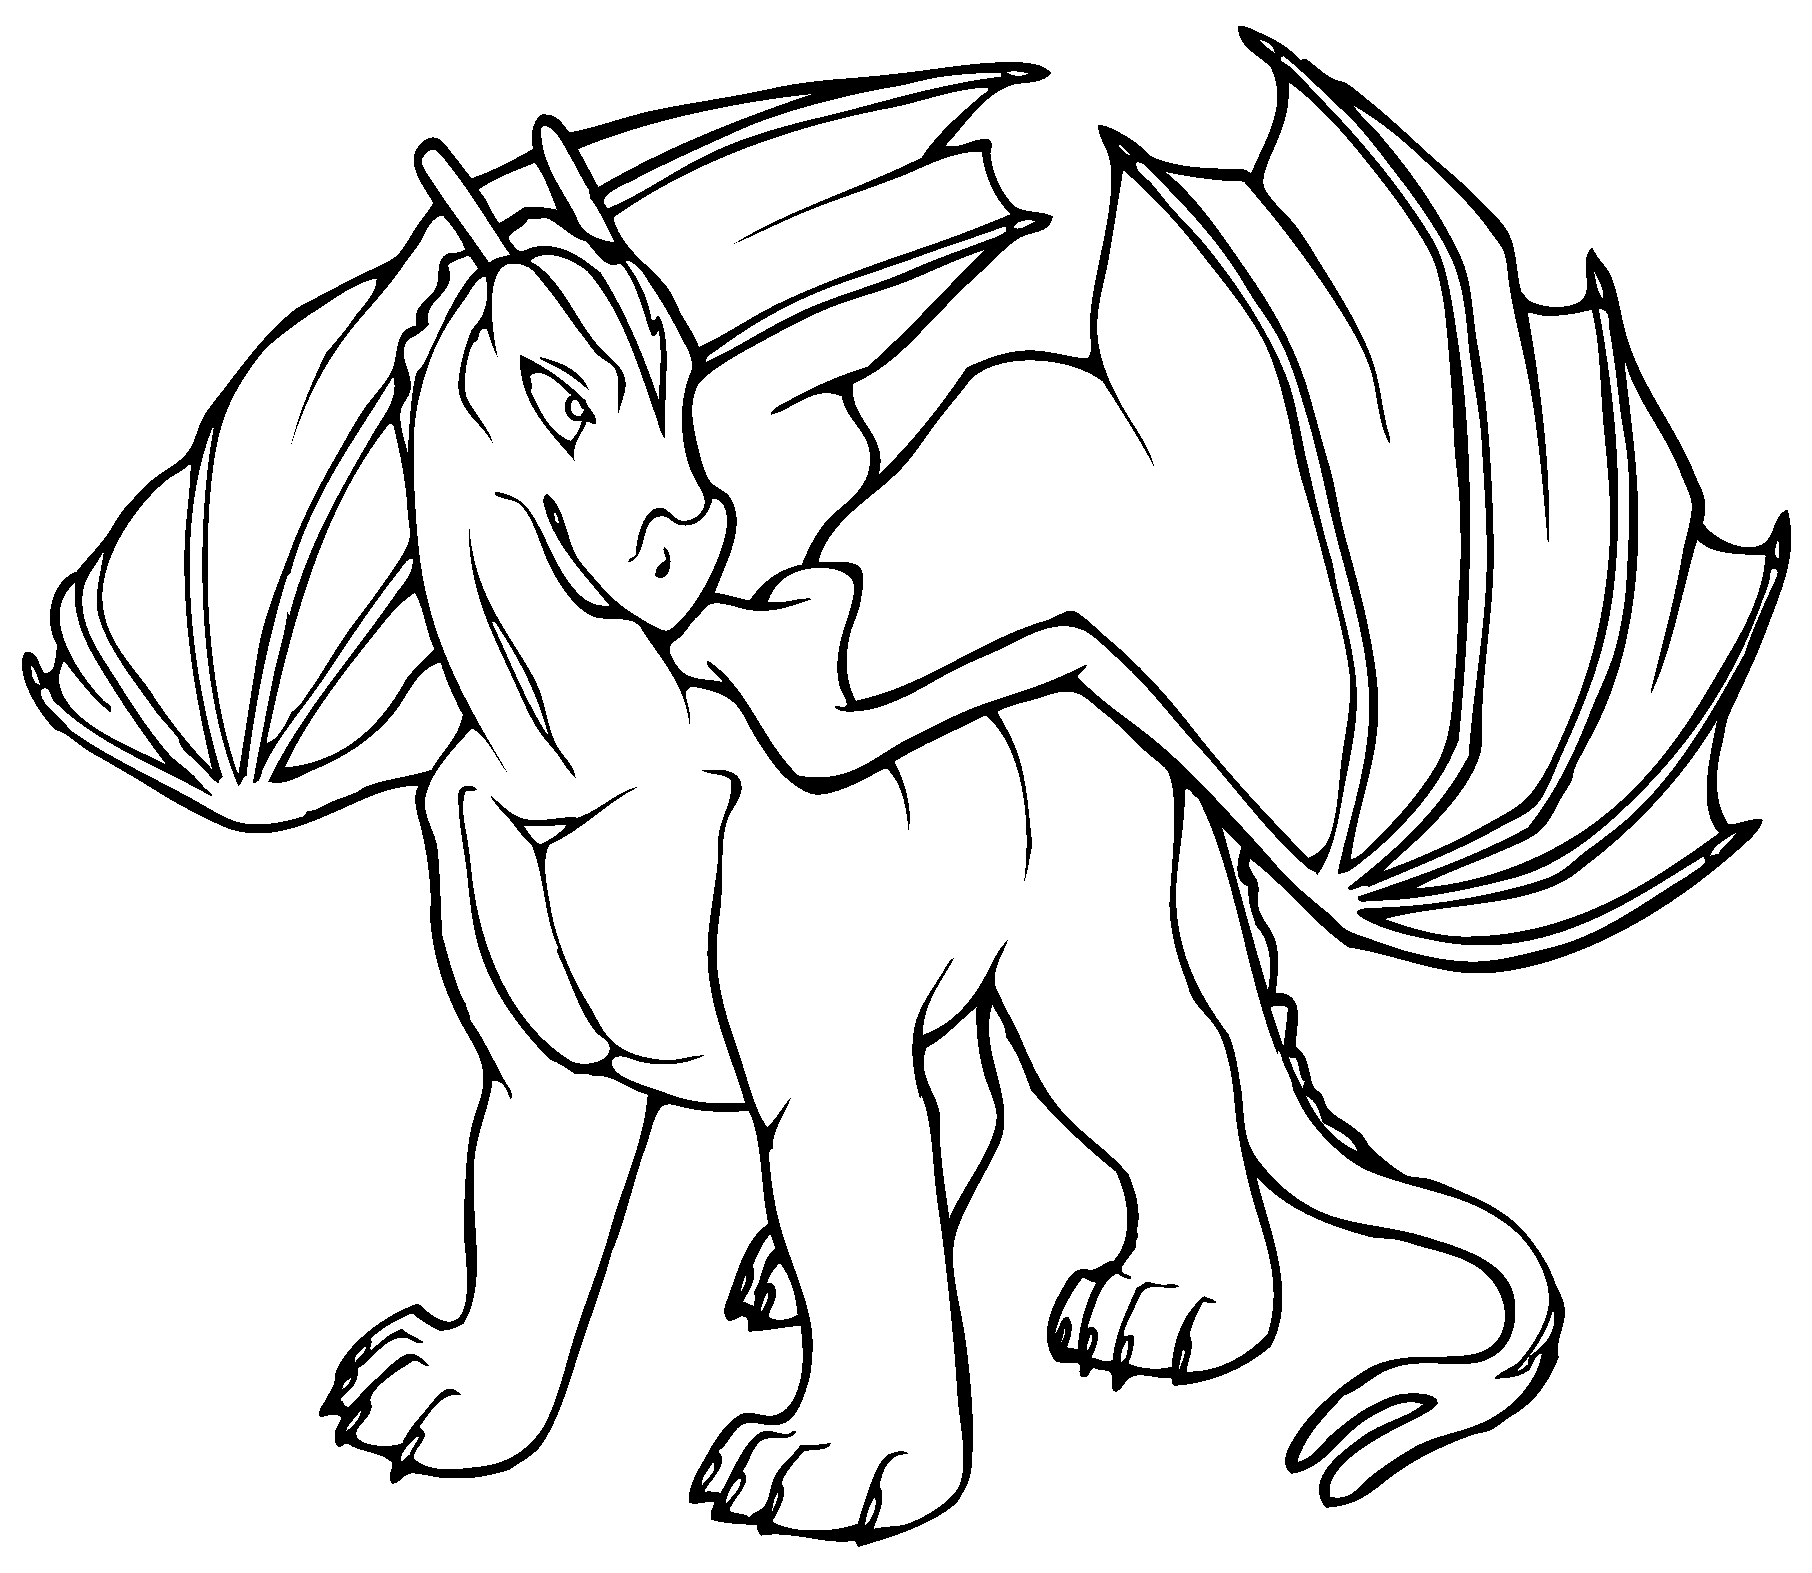 Superieur Cartoon Dragon Coloring Pages